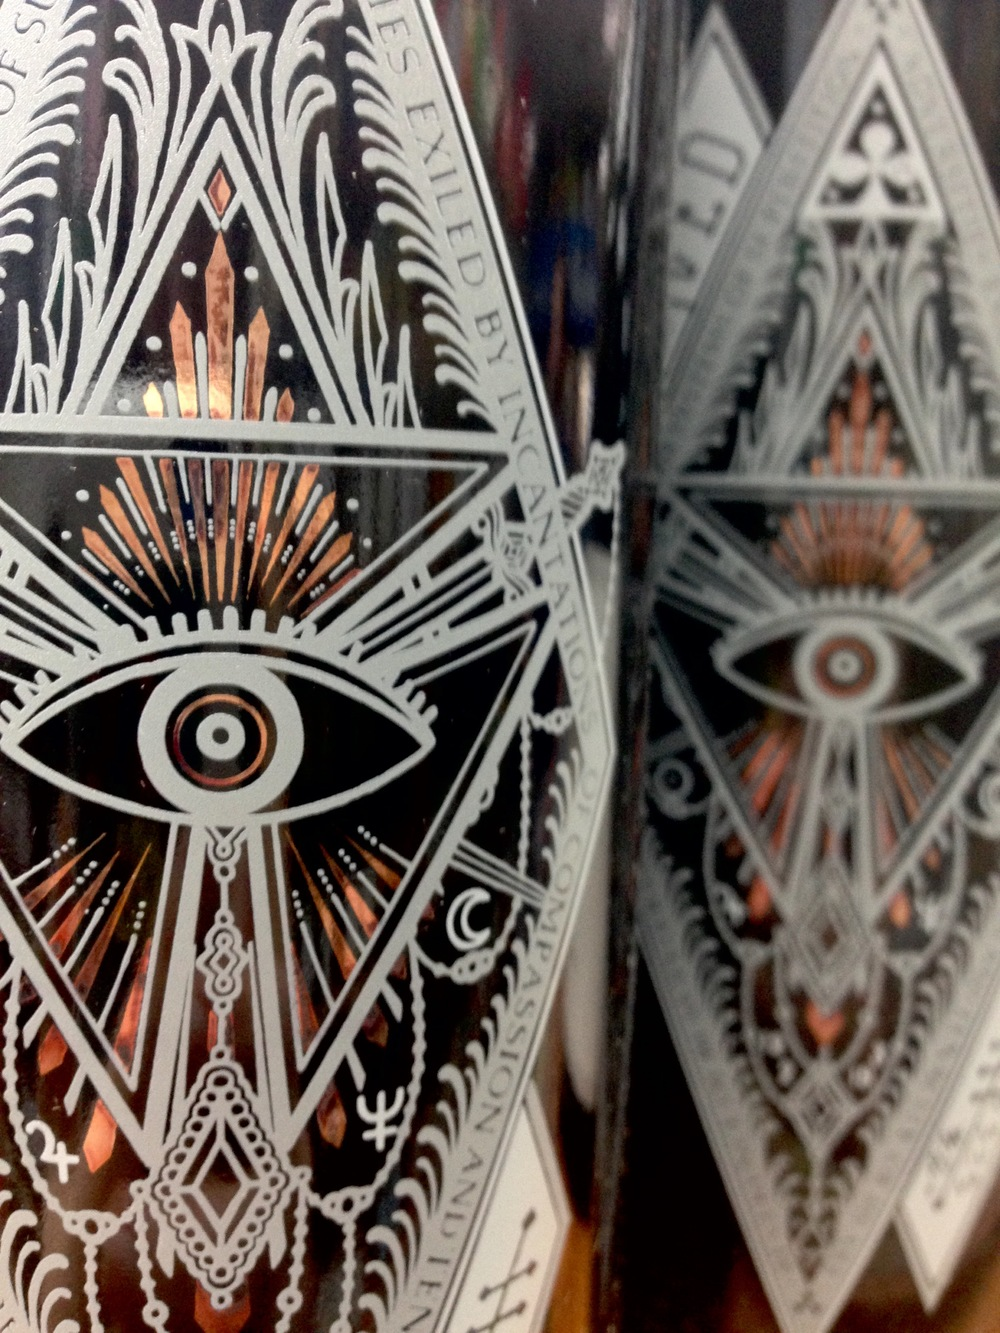 Beautiful art spotted on some bottles in Orlando. Ojo de Dio, anyone?